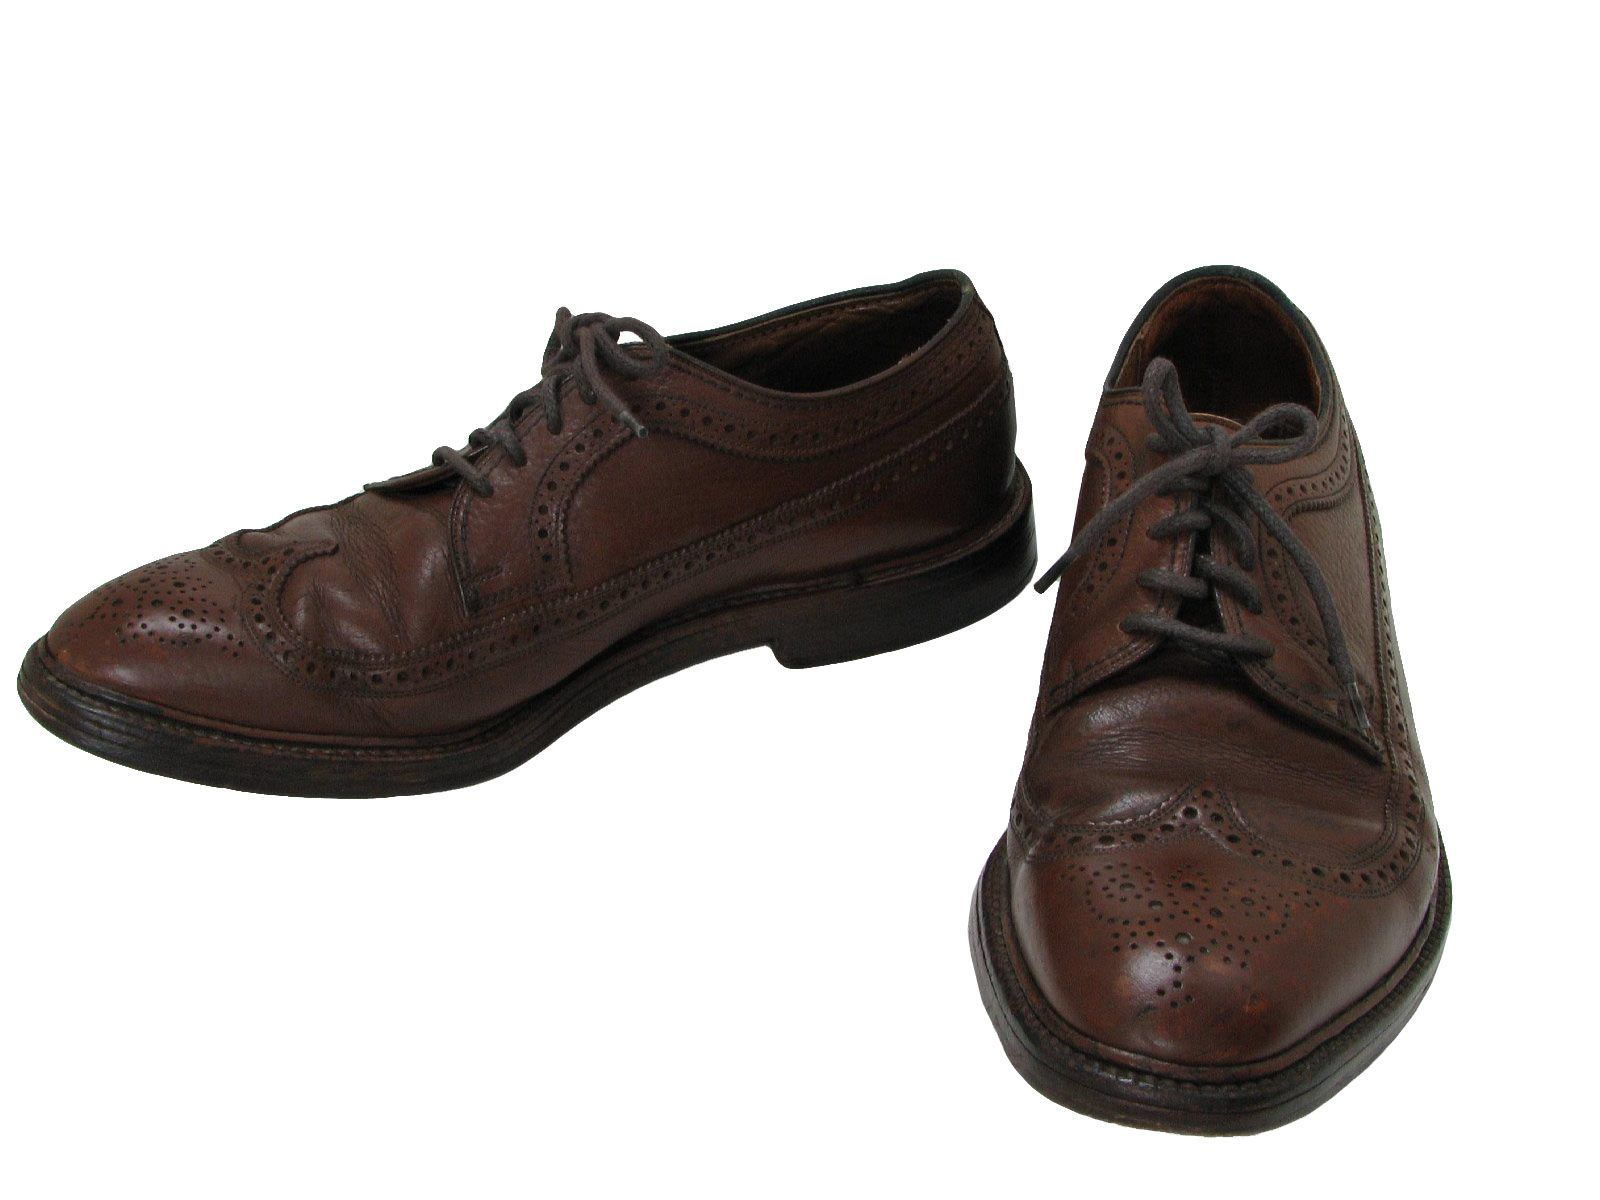 $35 Mens brown leather pebble grain wing tip brogues style dress shoes with  heavy leather soles